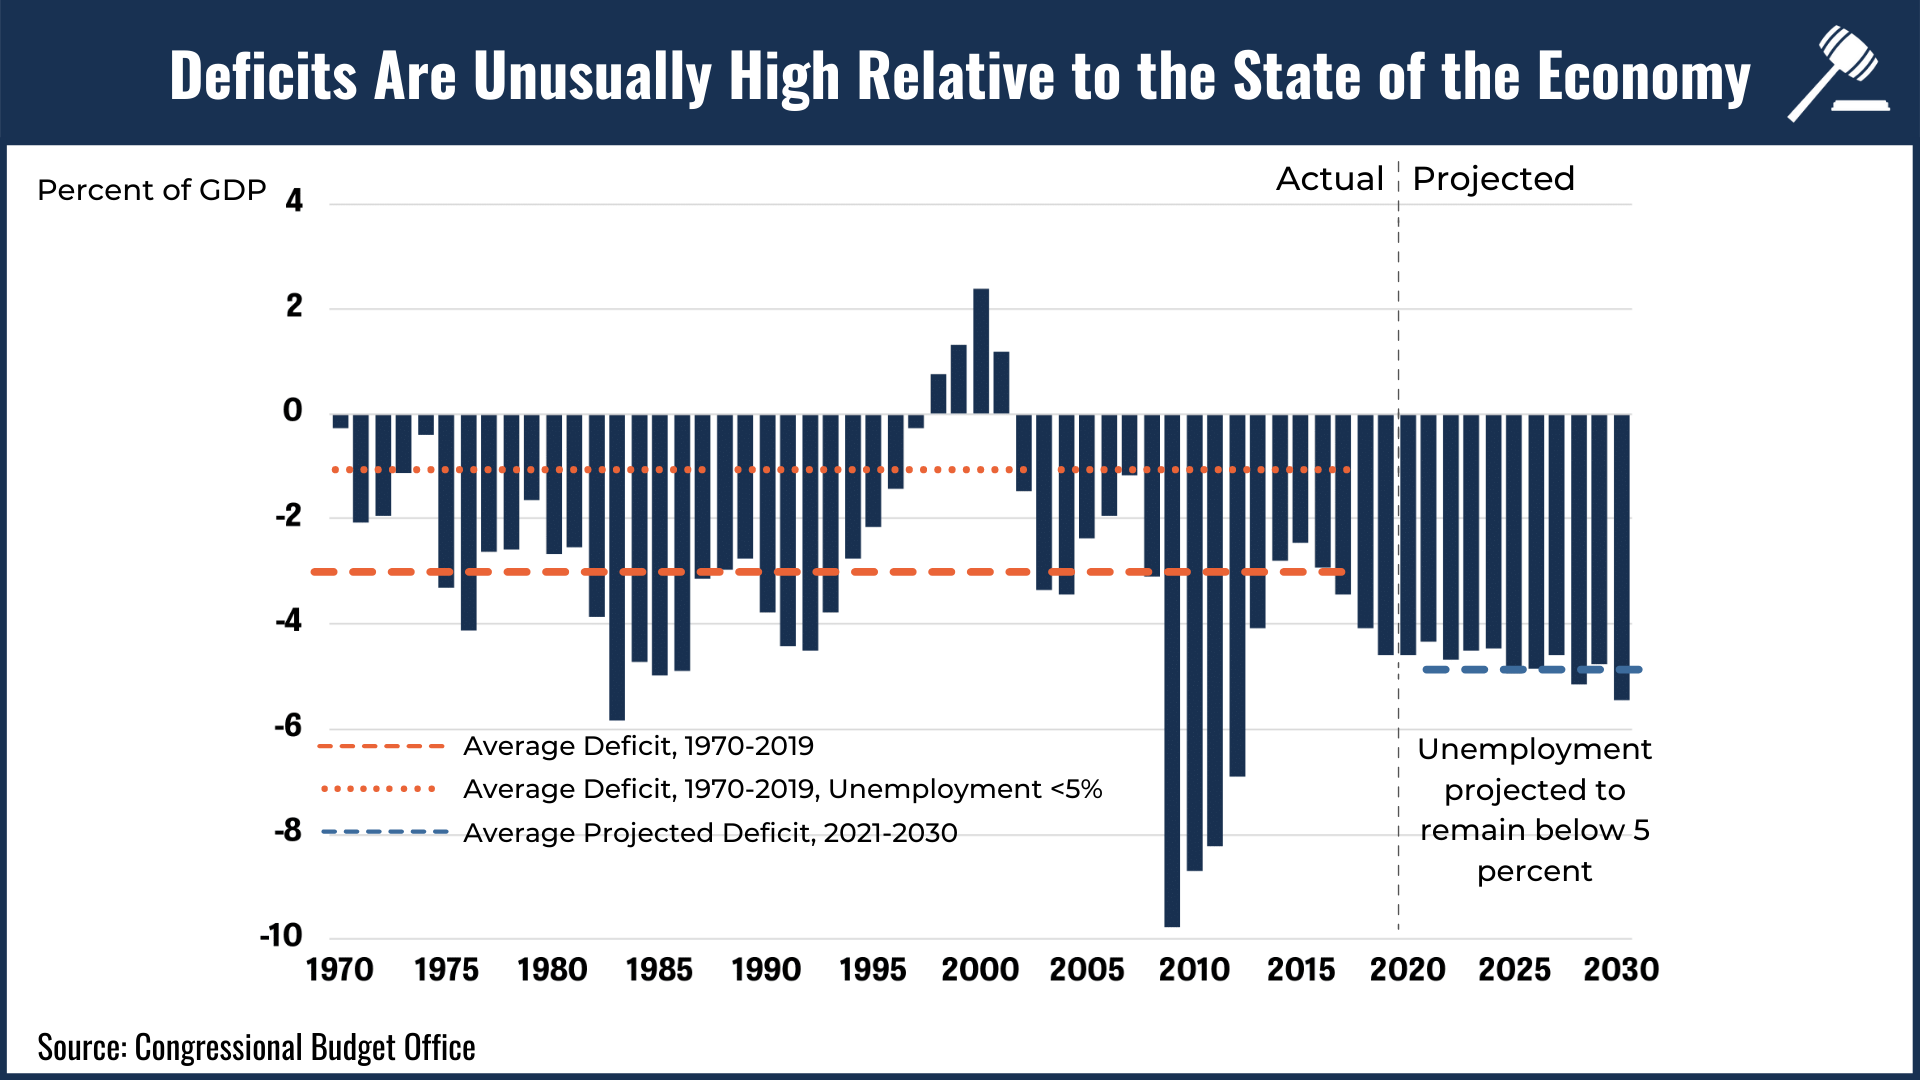 Bar chart showing how deficits are unusually high relative to the state of the economy